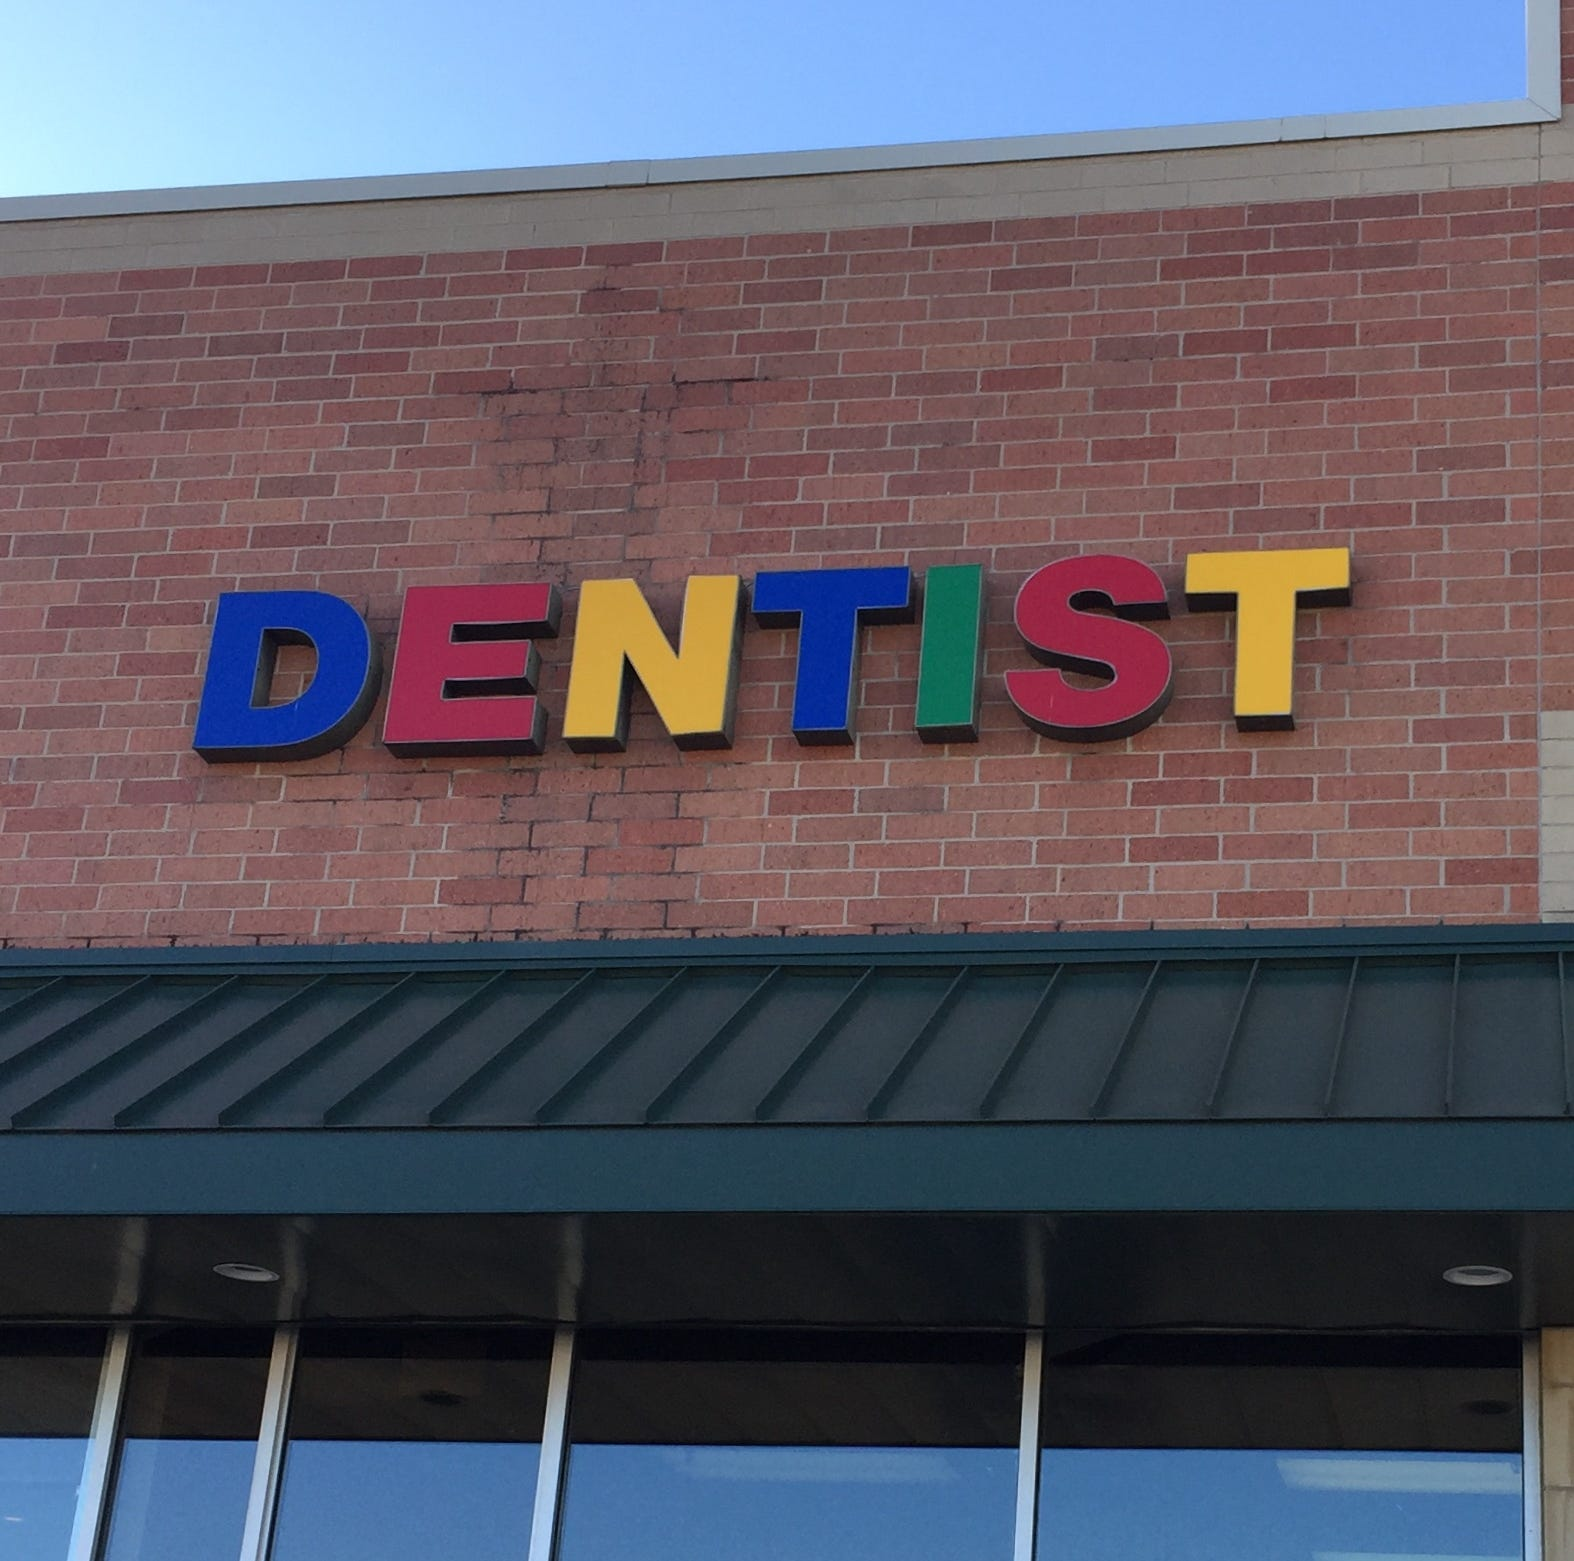 Dentist, accused of inappropriate behavior, agrees not to be alone with female patients